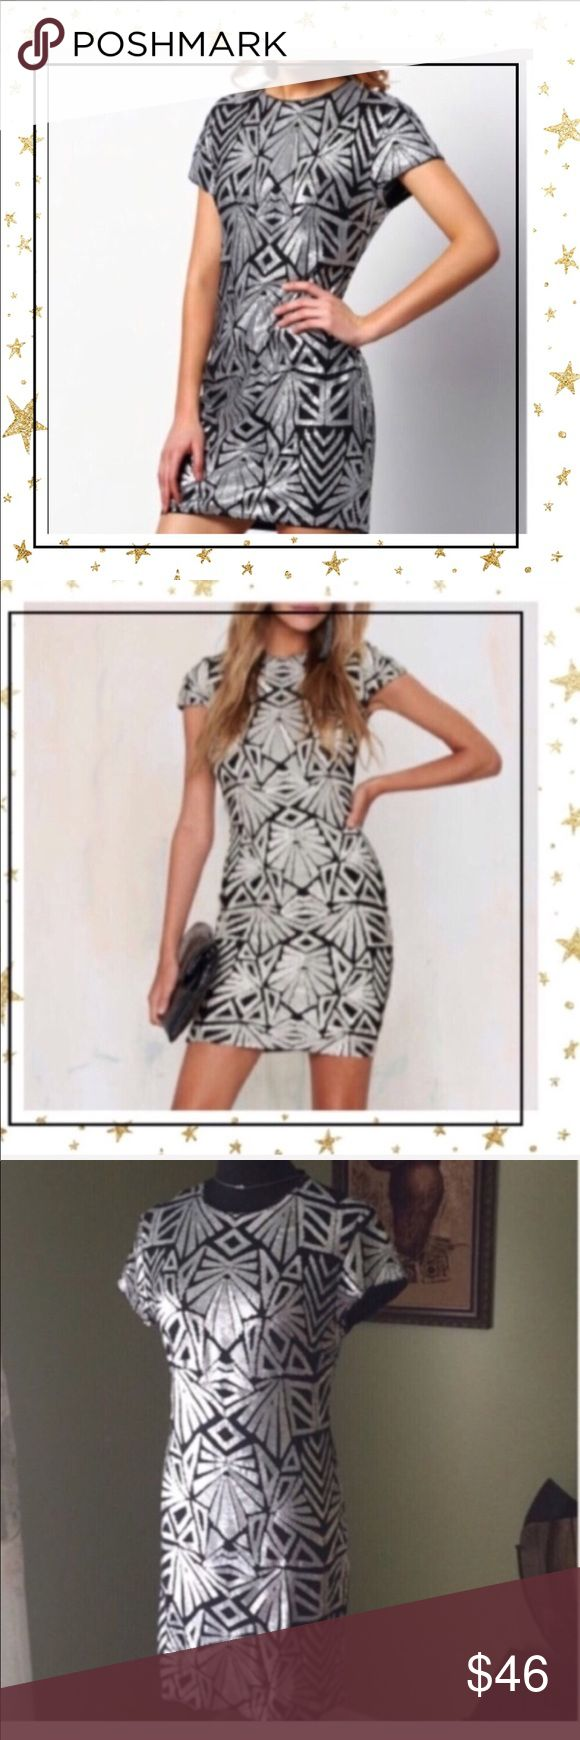 Silver Night Out Mini Dress (G7NC20Z) New, never worn. Cup sleeve. Size runs smaller. Bust 97sm, length 84 sm. Dresses Mini